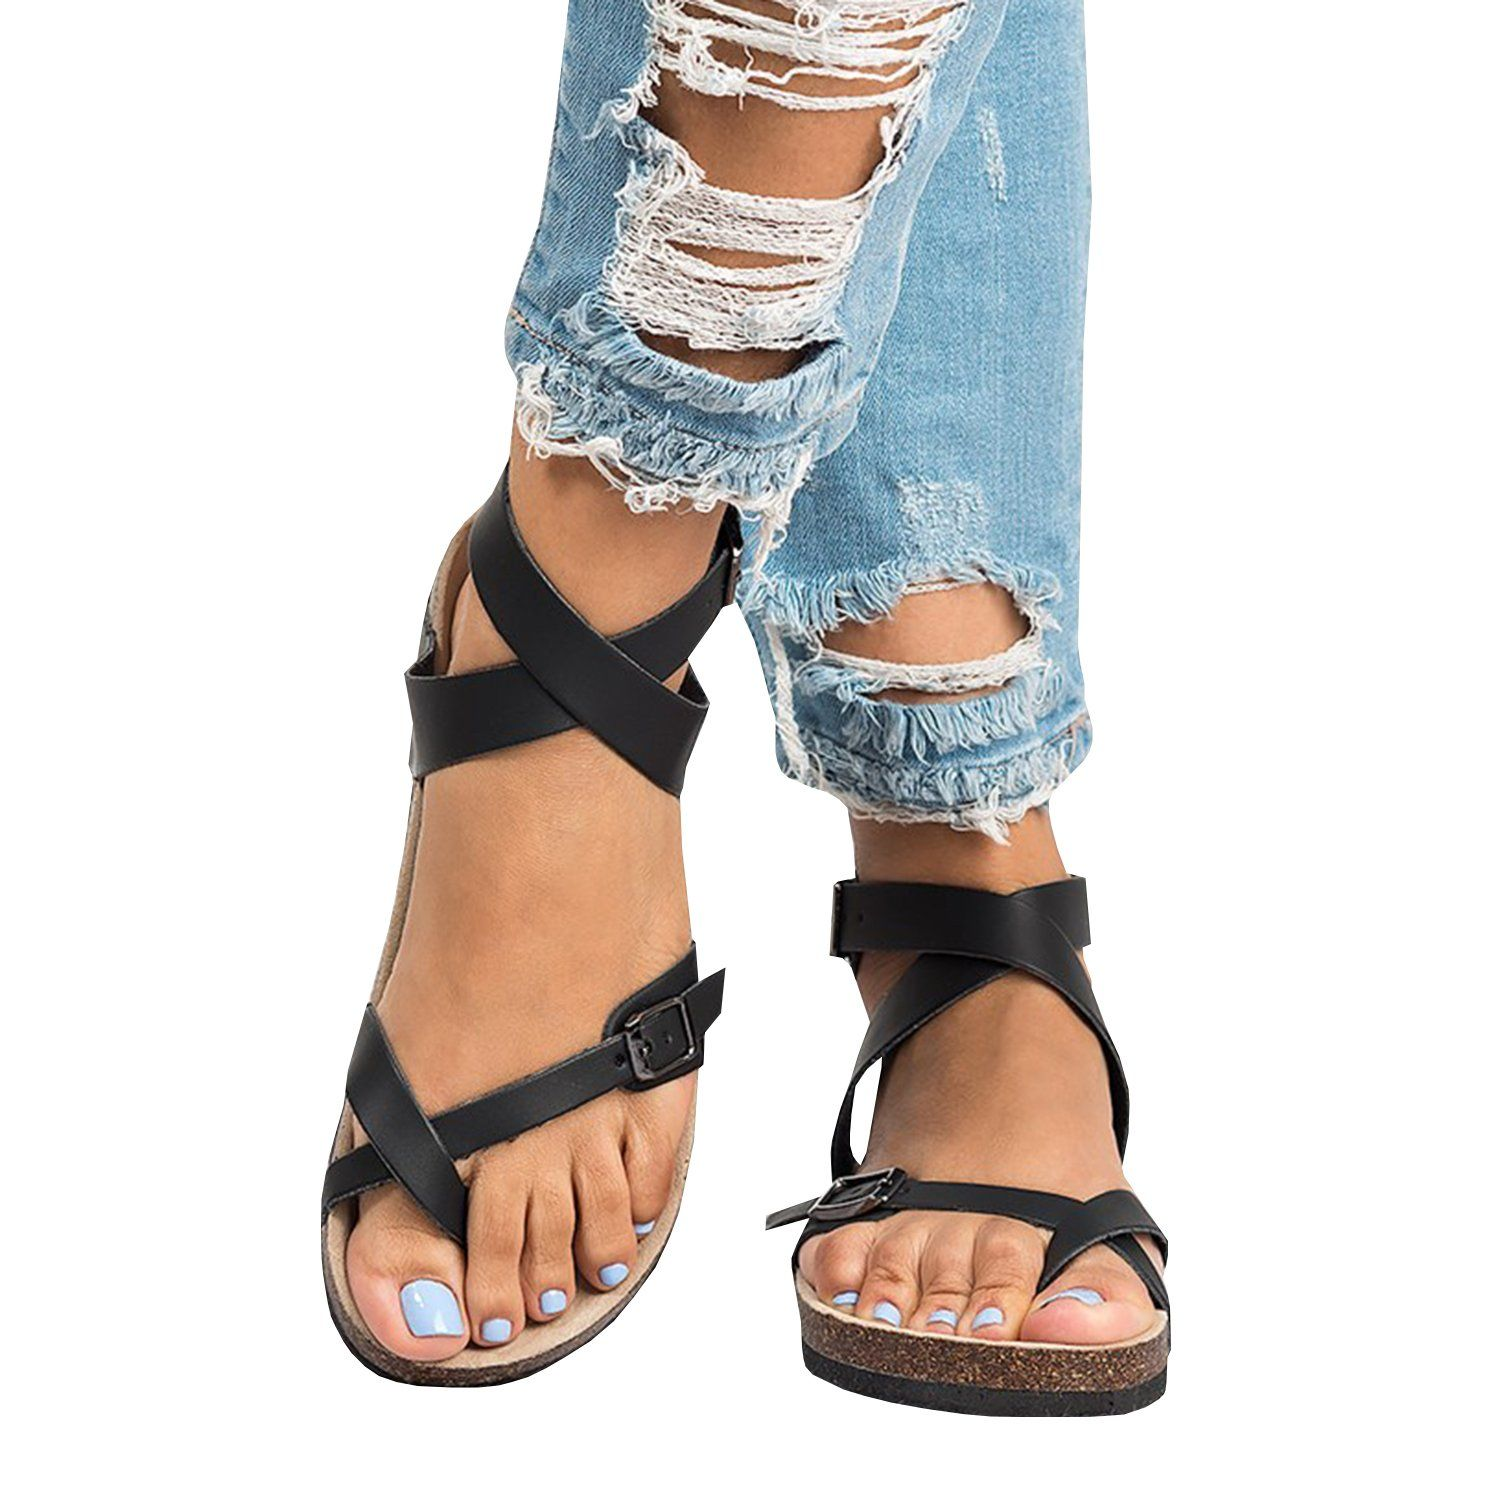 Chellysun Roman Sandals Buckle Peep-toe Flat Shoes. boho summer comfortable  strappy Gladiator leather